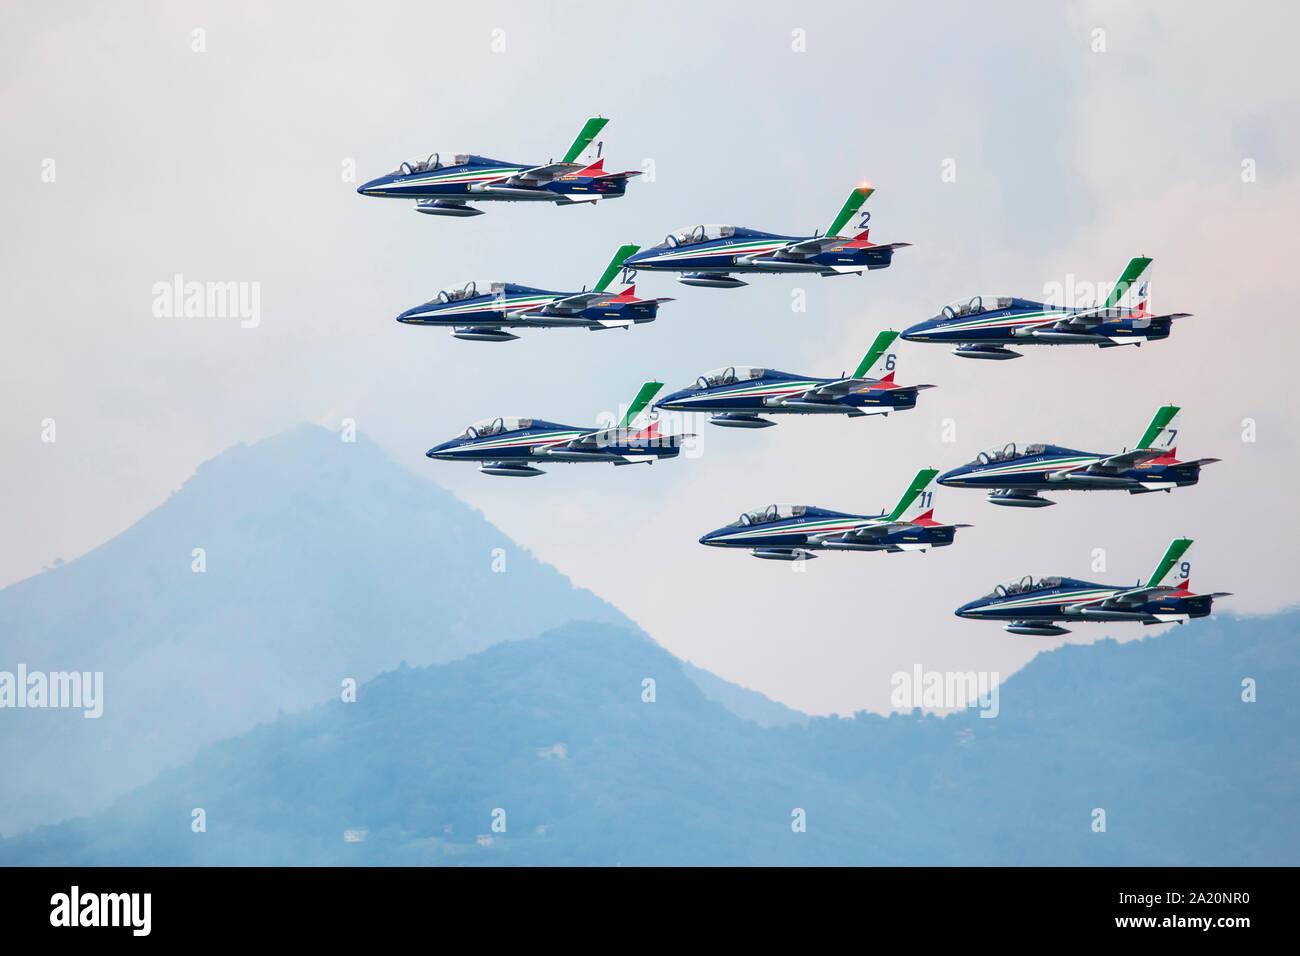 """Varenna, Italy - SEPTEMBER 29, 2019:The aerobatic """"tricolor arrows"""" team of the Italian military aeronautics performs above Lake Lecco during an airsh Stock Photo"""